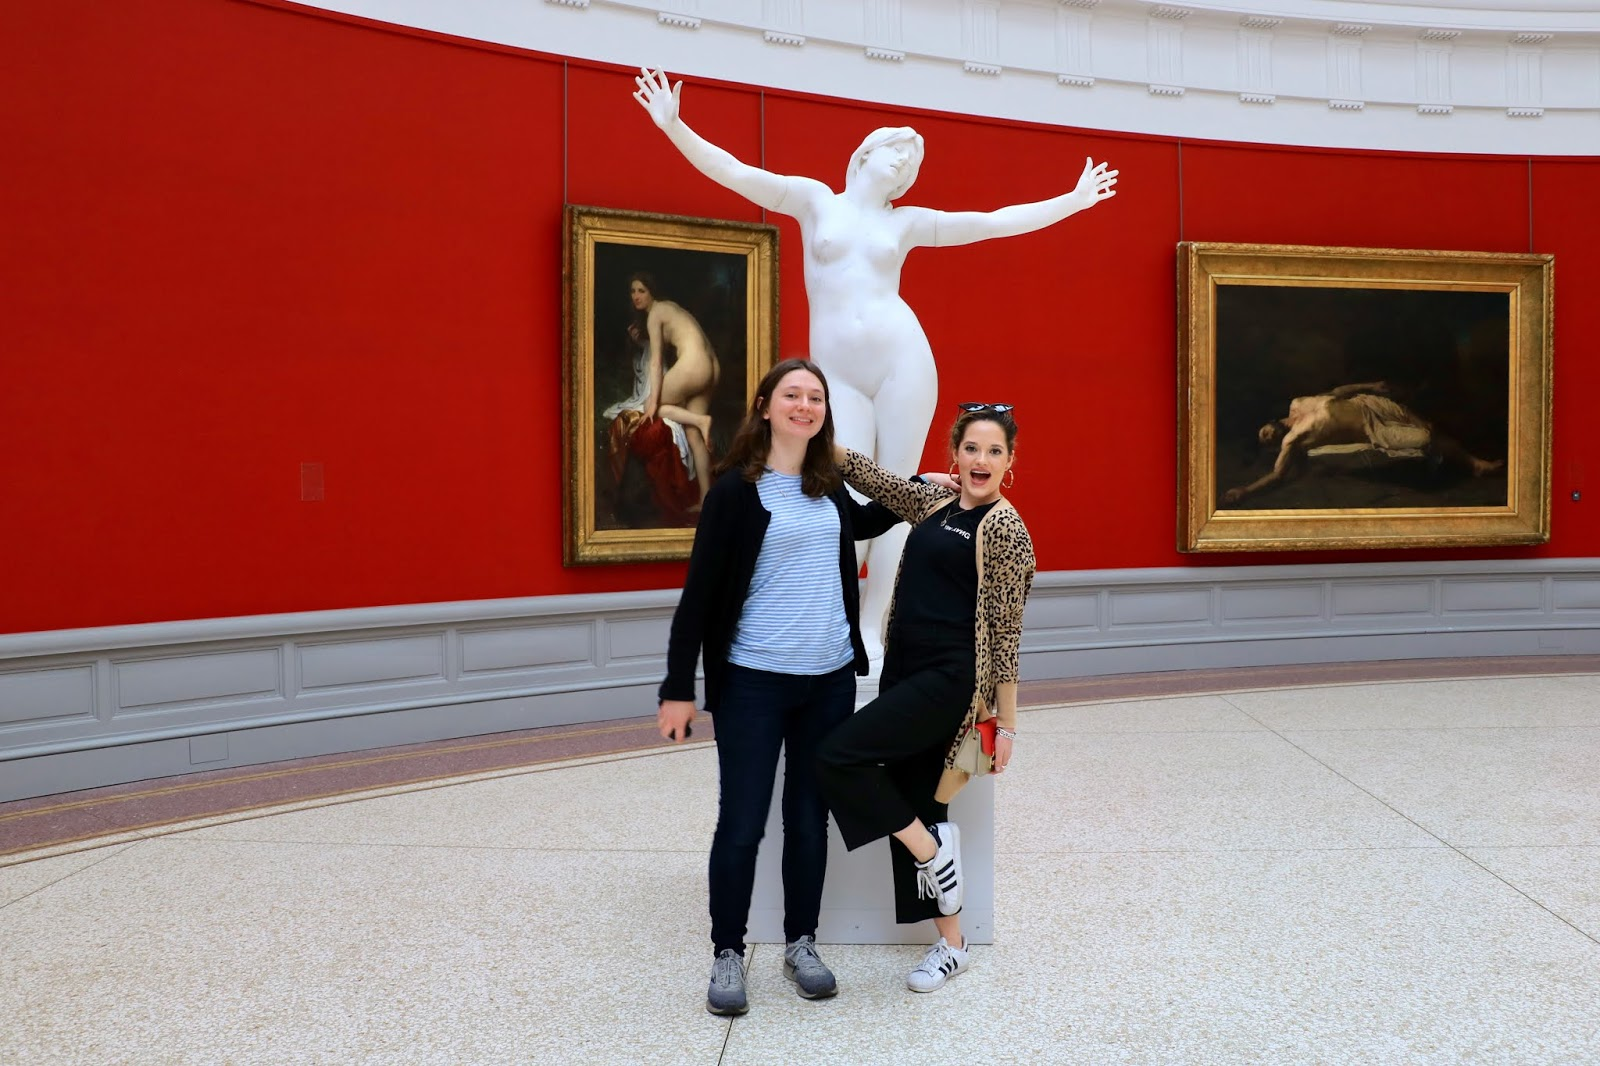 Fashion blogger Kathleen Harper and her sister at MSK Museum in Ghent, Belgium